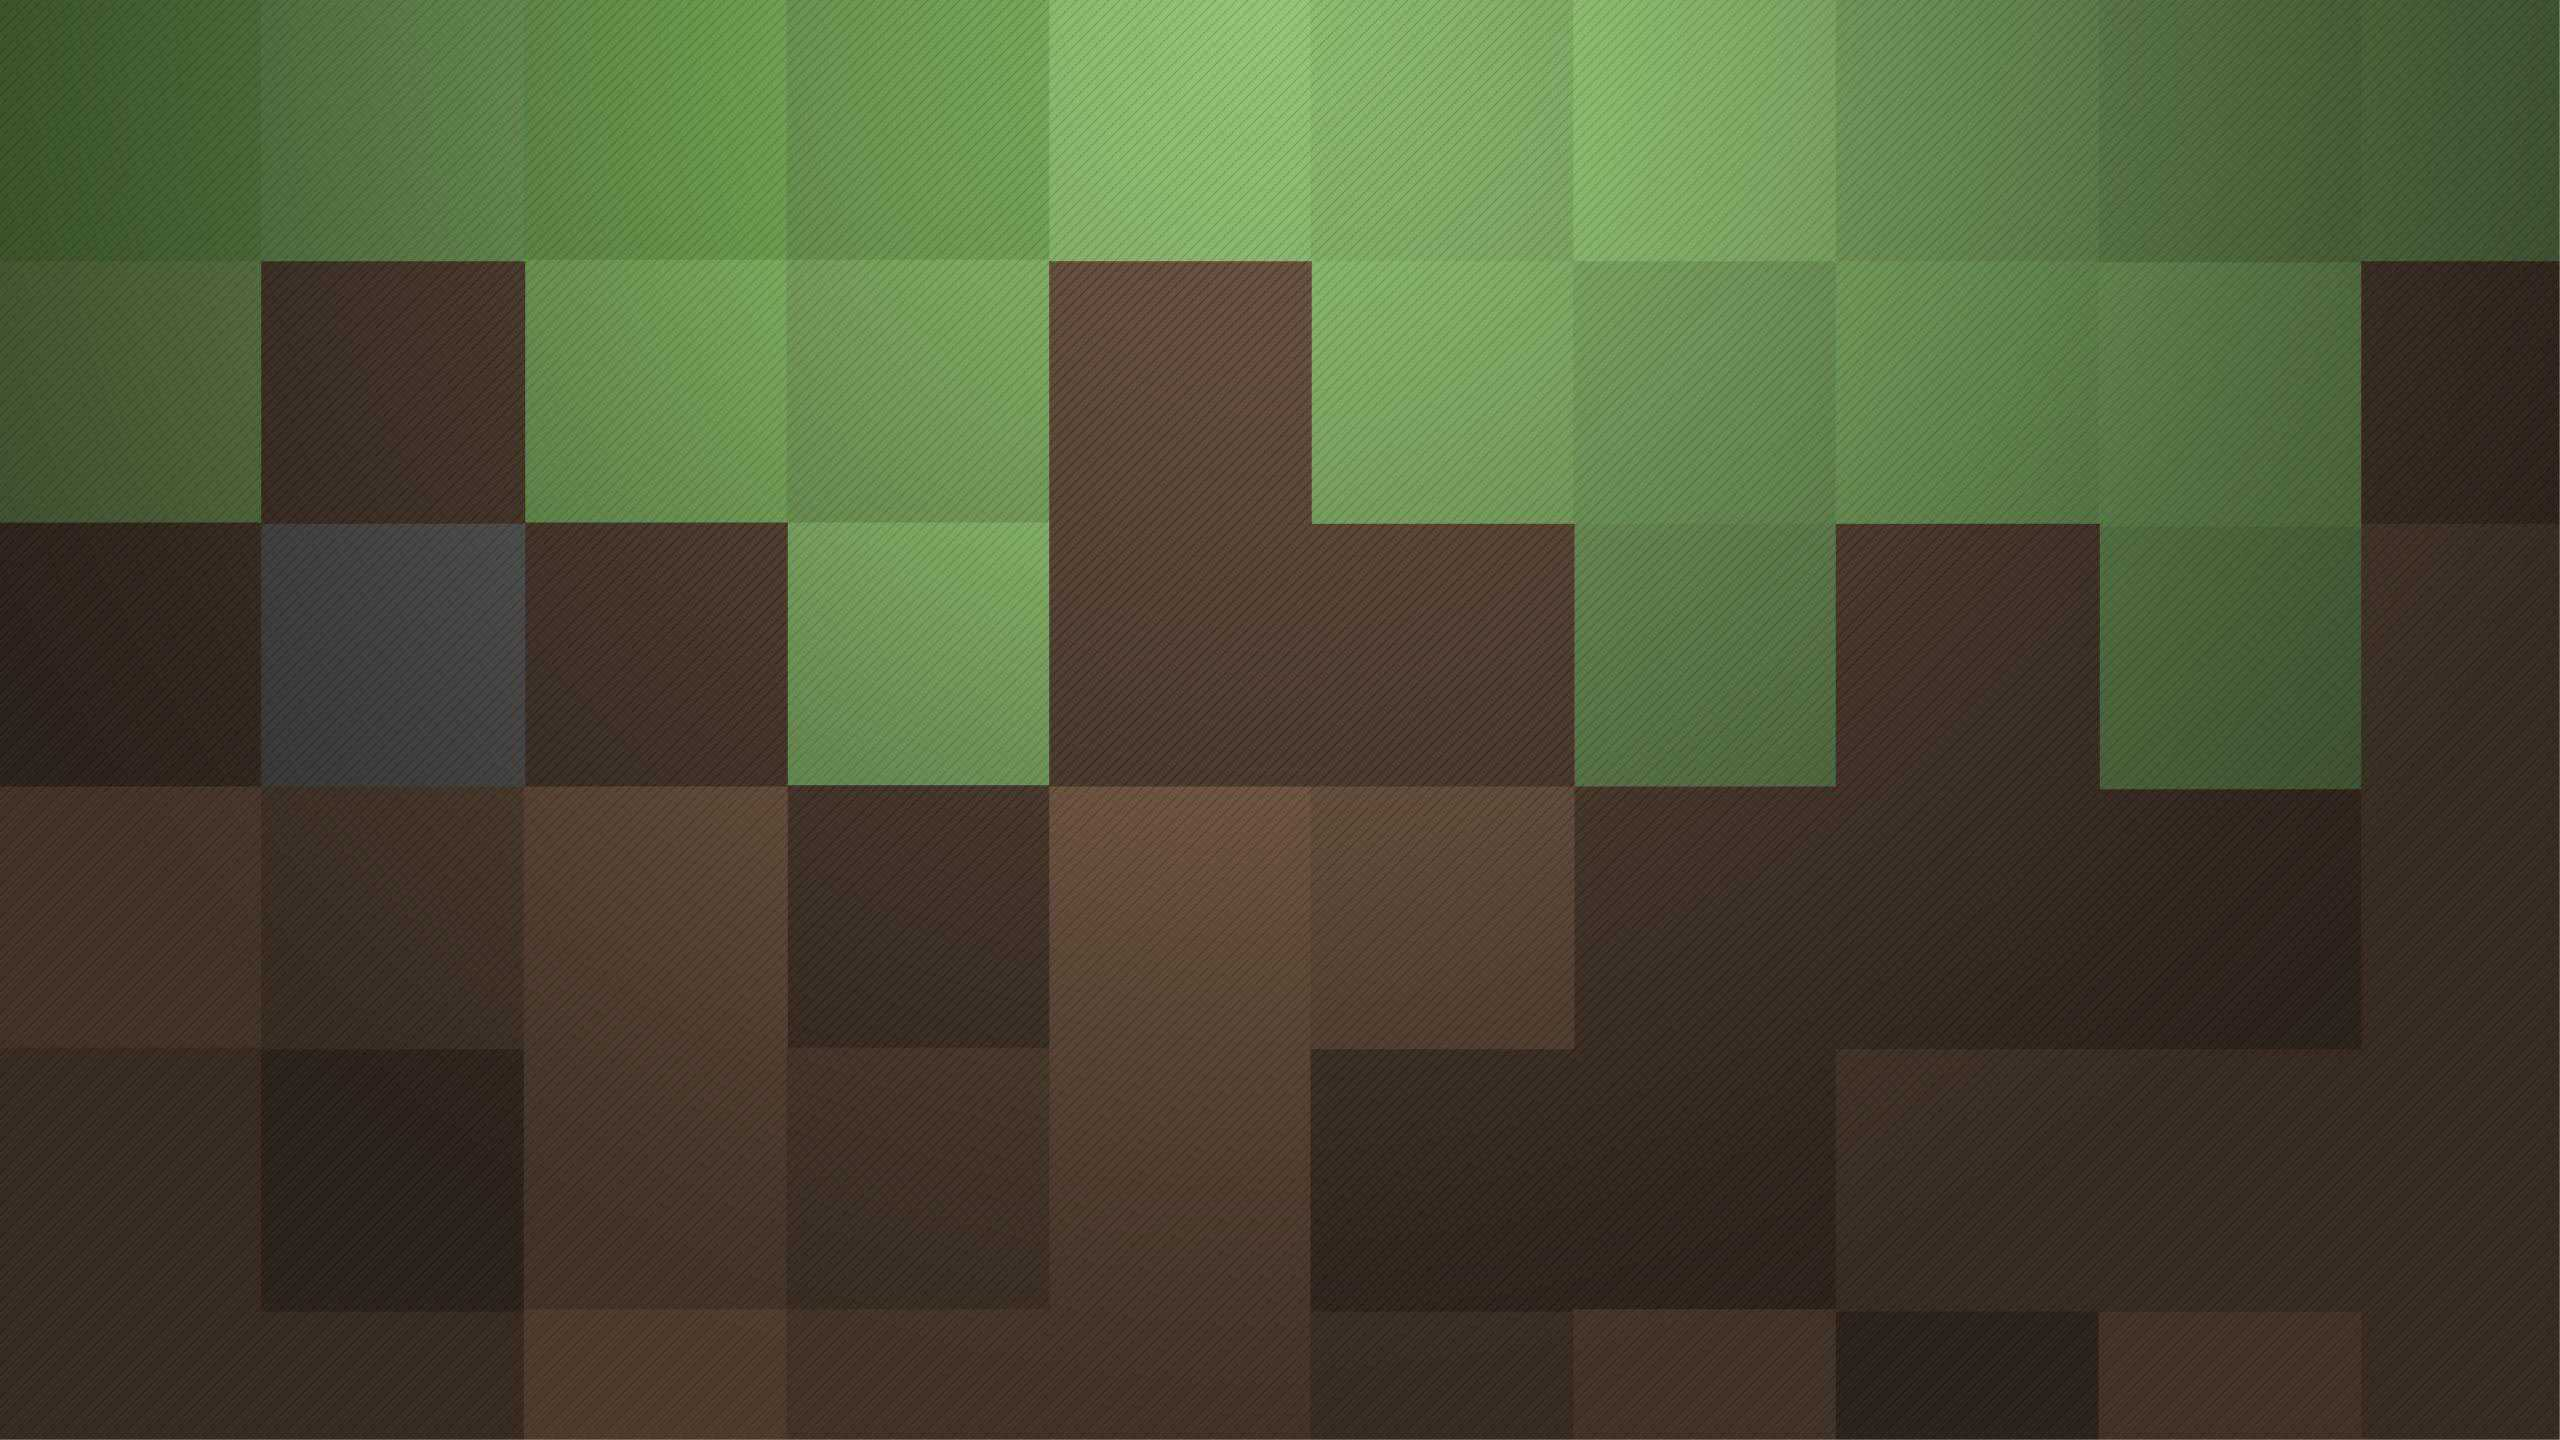 minecraft blocks wqhd 1440p wallpaper